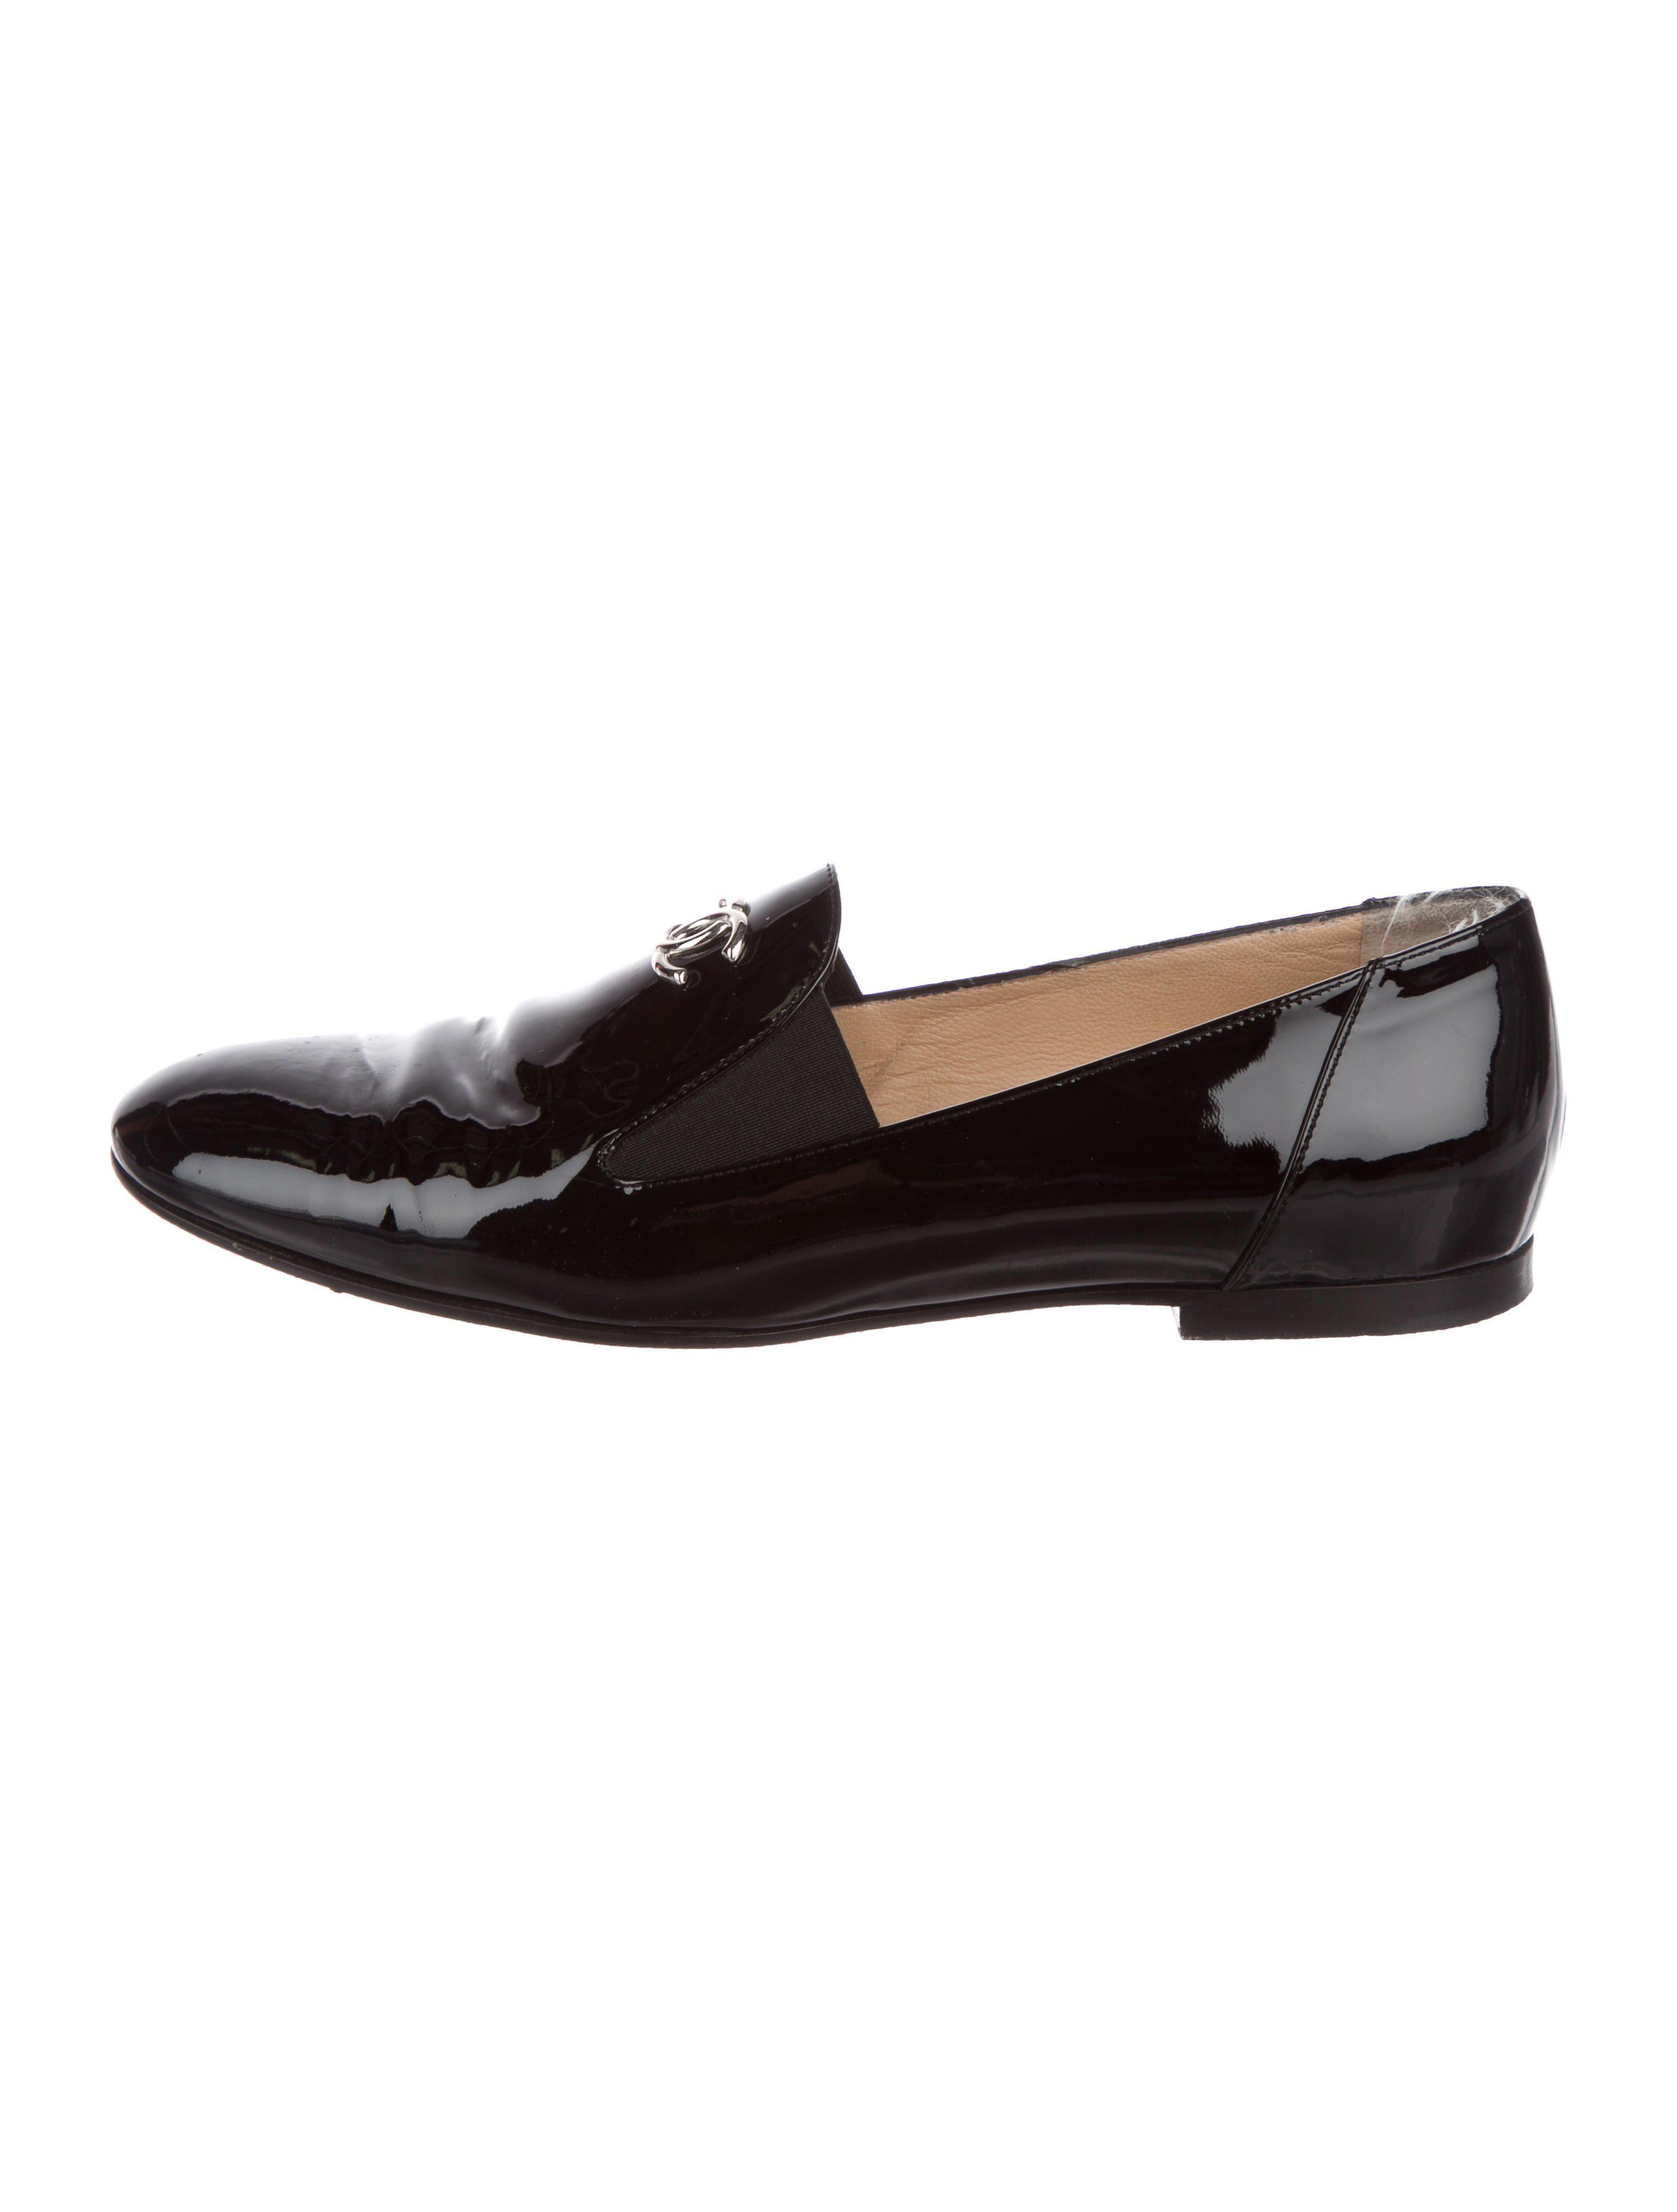 254d5cd2b02 Lyst - Chanel Patent Leather Cc Loafers in Black